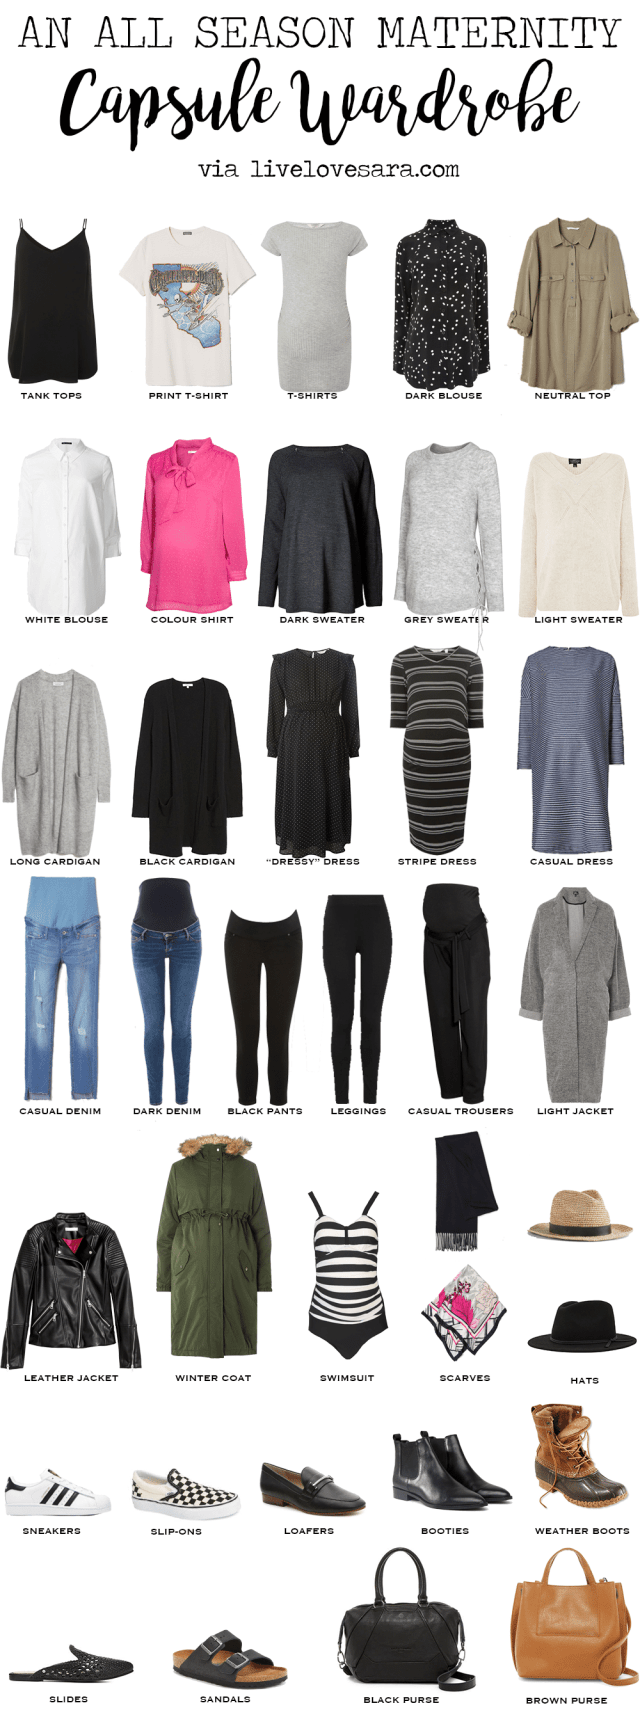 All season maternity capsule wardrobe | capsule wardrobe | maternity capsule | what to wear when pregnant | maternity clothes ideas | maternity wardrobe